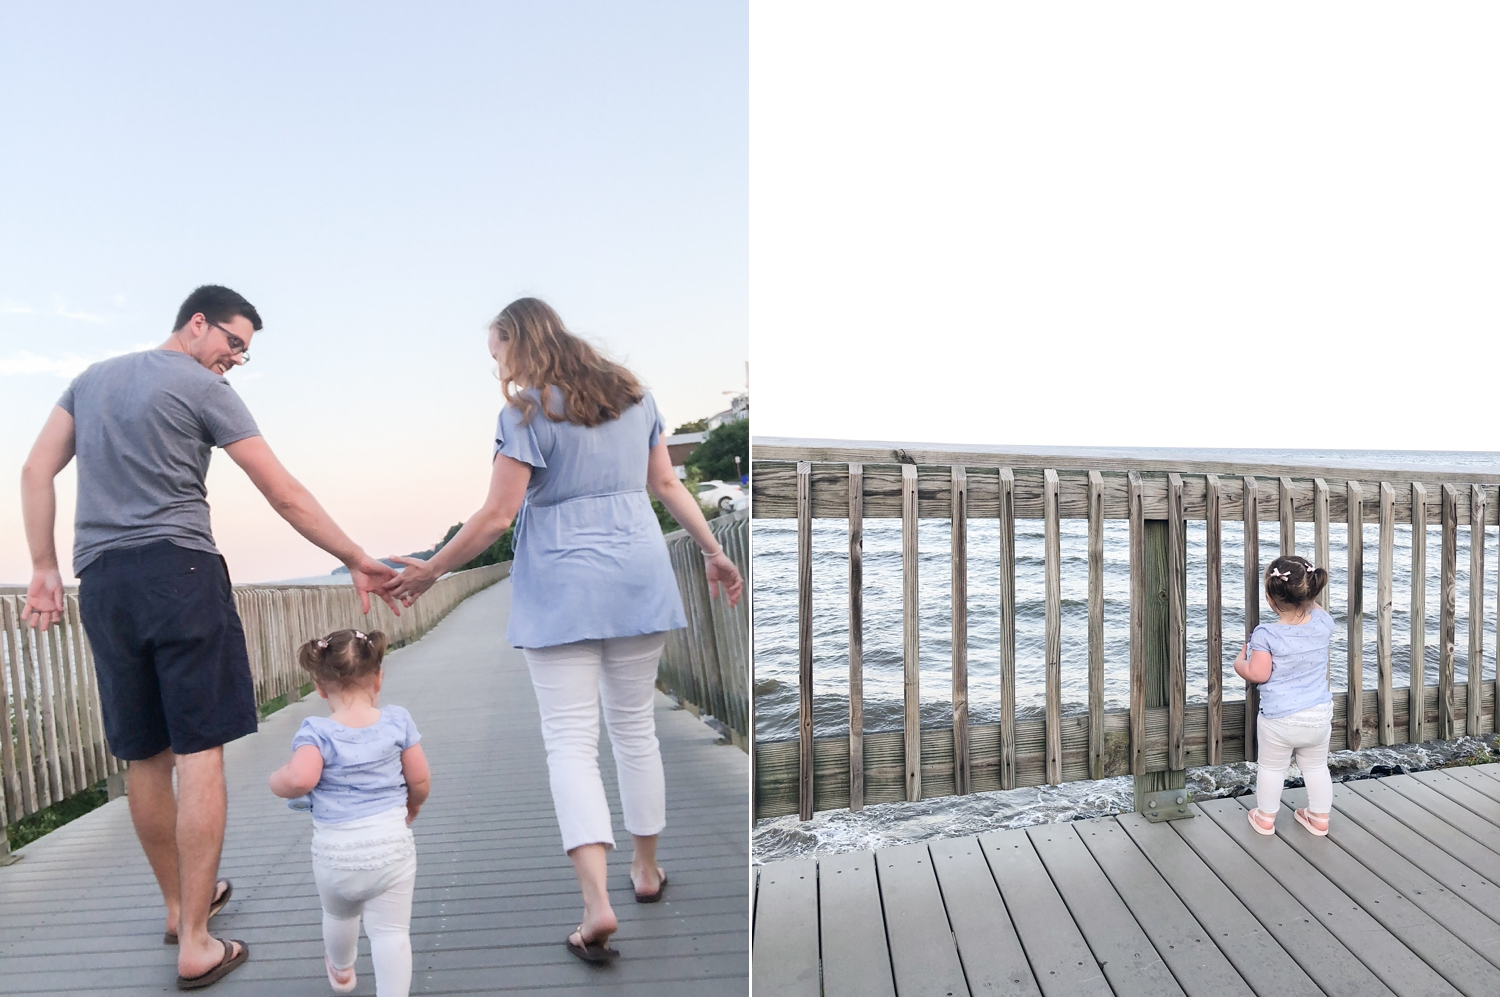 The last night we went out to dinner and walked on the boardwalk. Payton loved running on it!